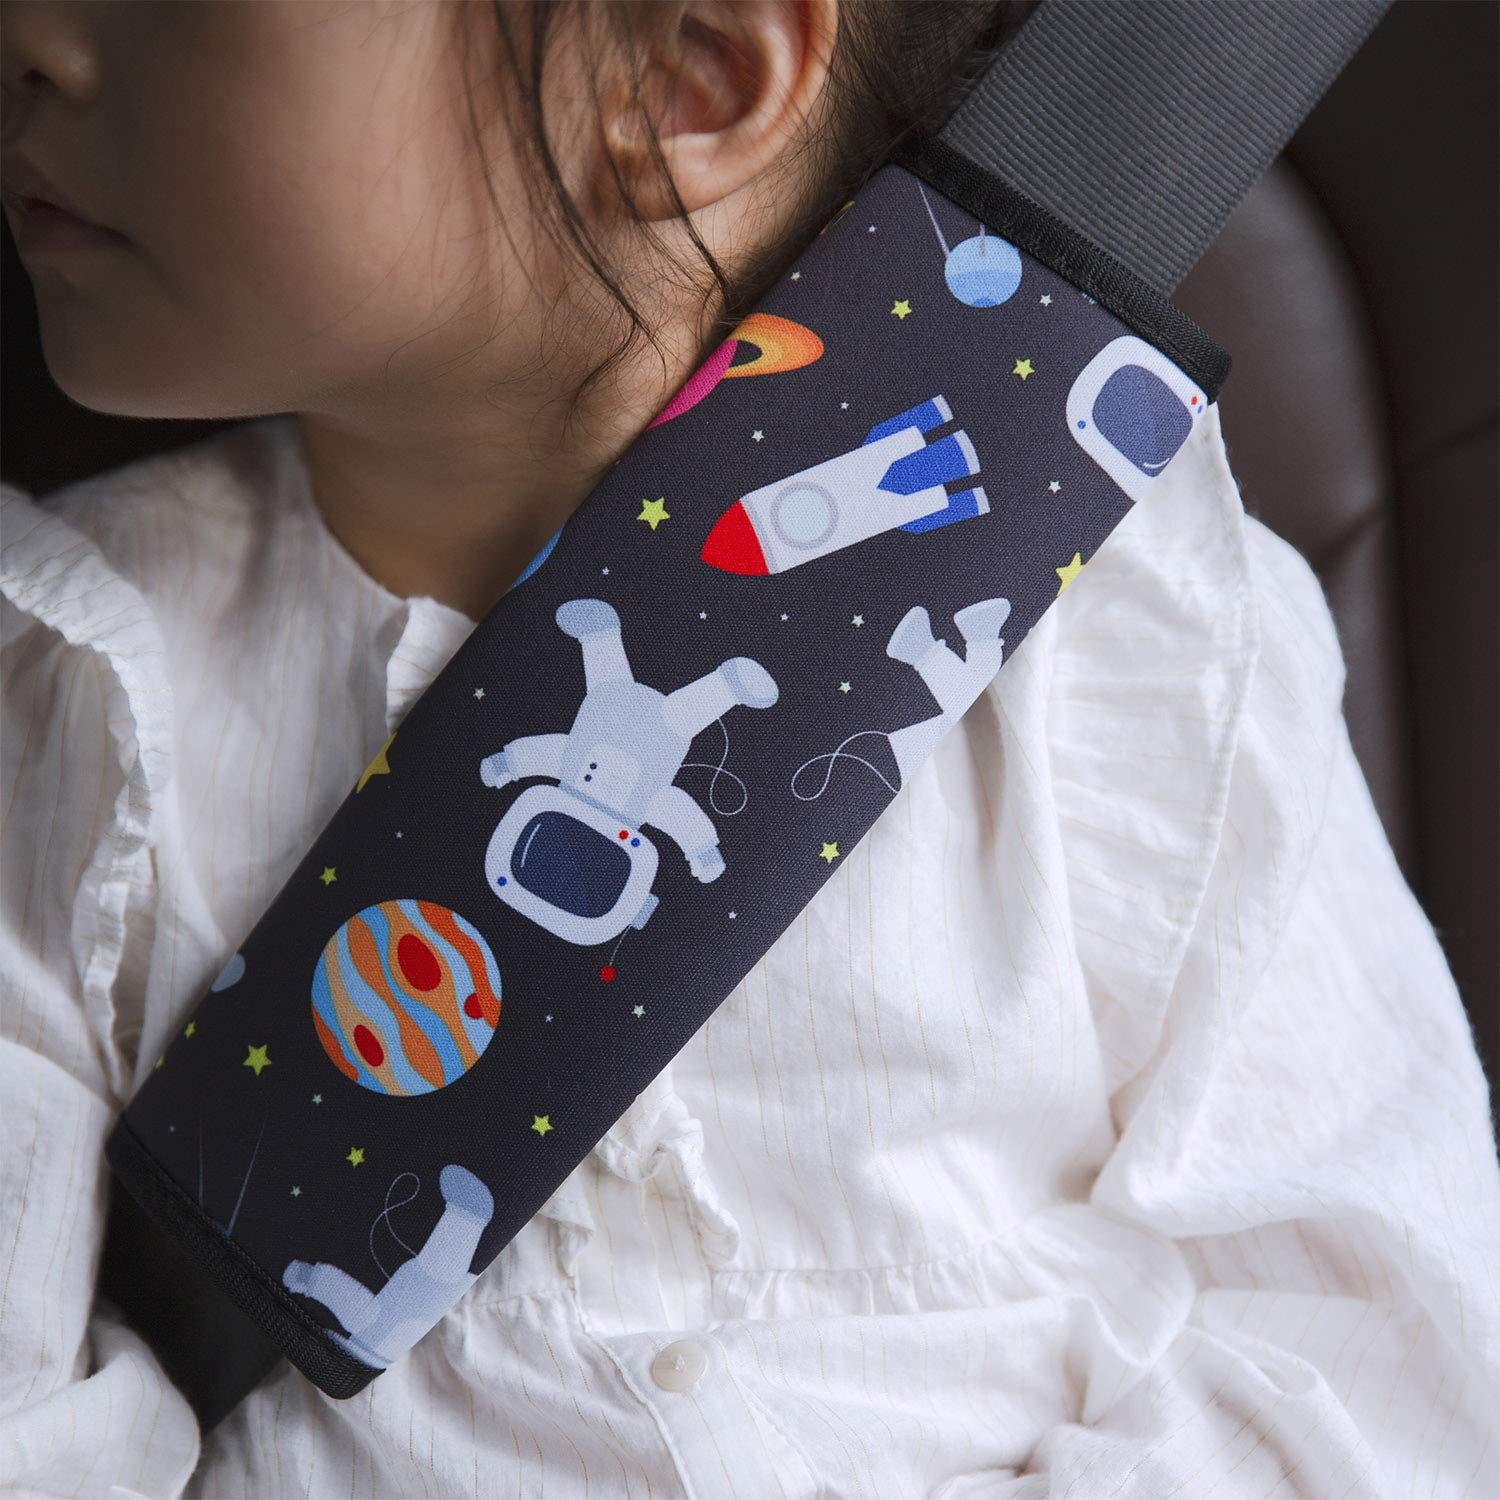 Spaceman 1 Pack Cute Cartoon Pattern Car Seat Belt Pads Cover for Girls and Boys Soft Comfort Seat Belt Cushion for Children YR Seat Belt Cover for Kids